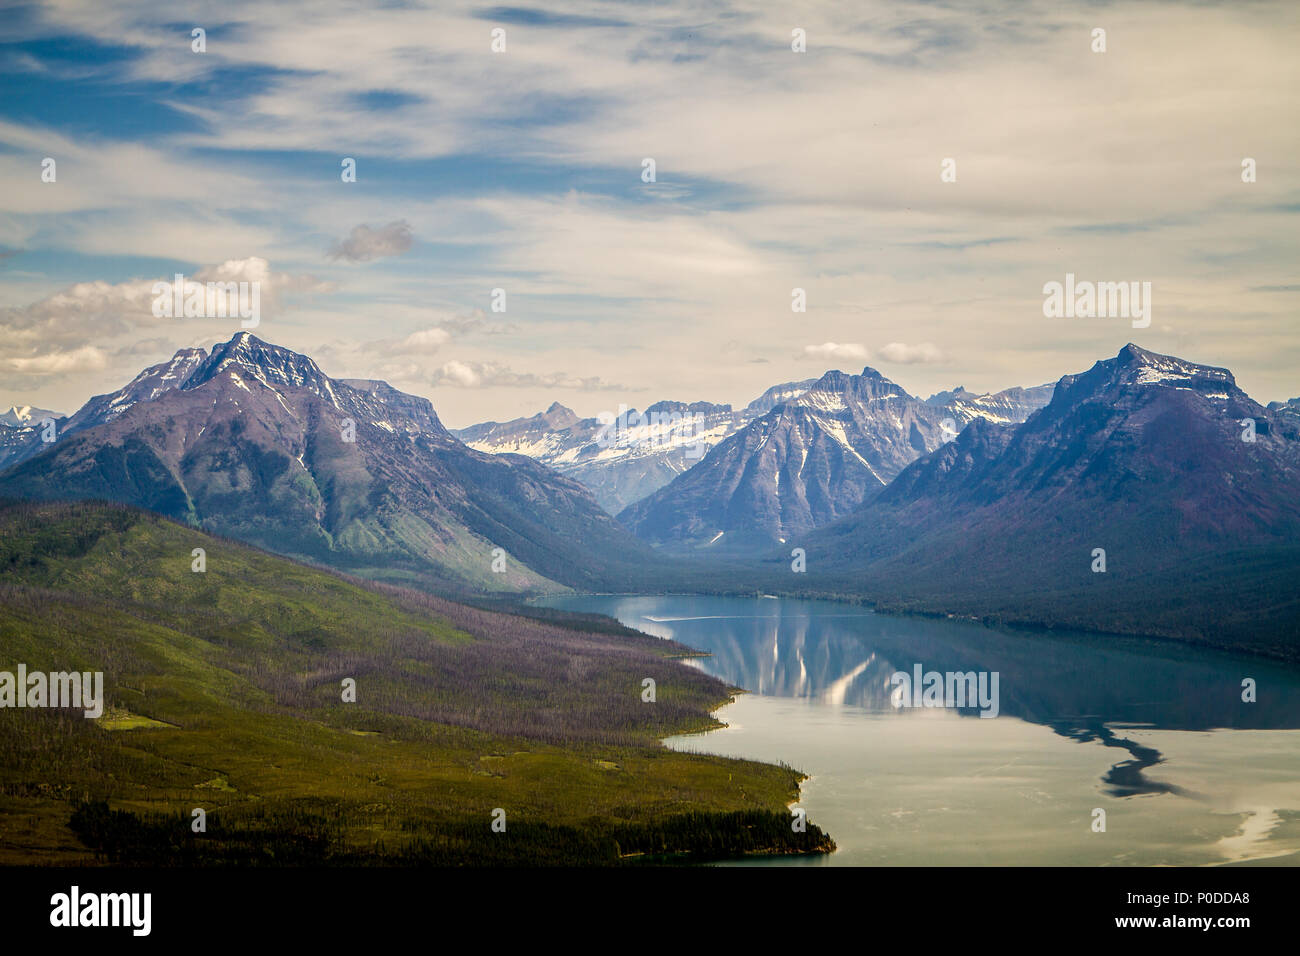 View of Lake McDonald in Glacier National Park, Montana from the Apgar Lookout - Stock Image